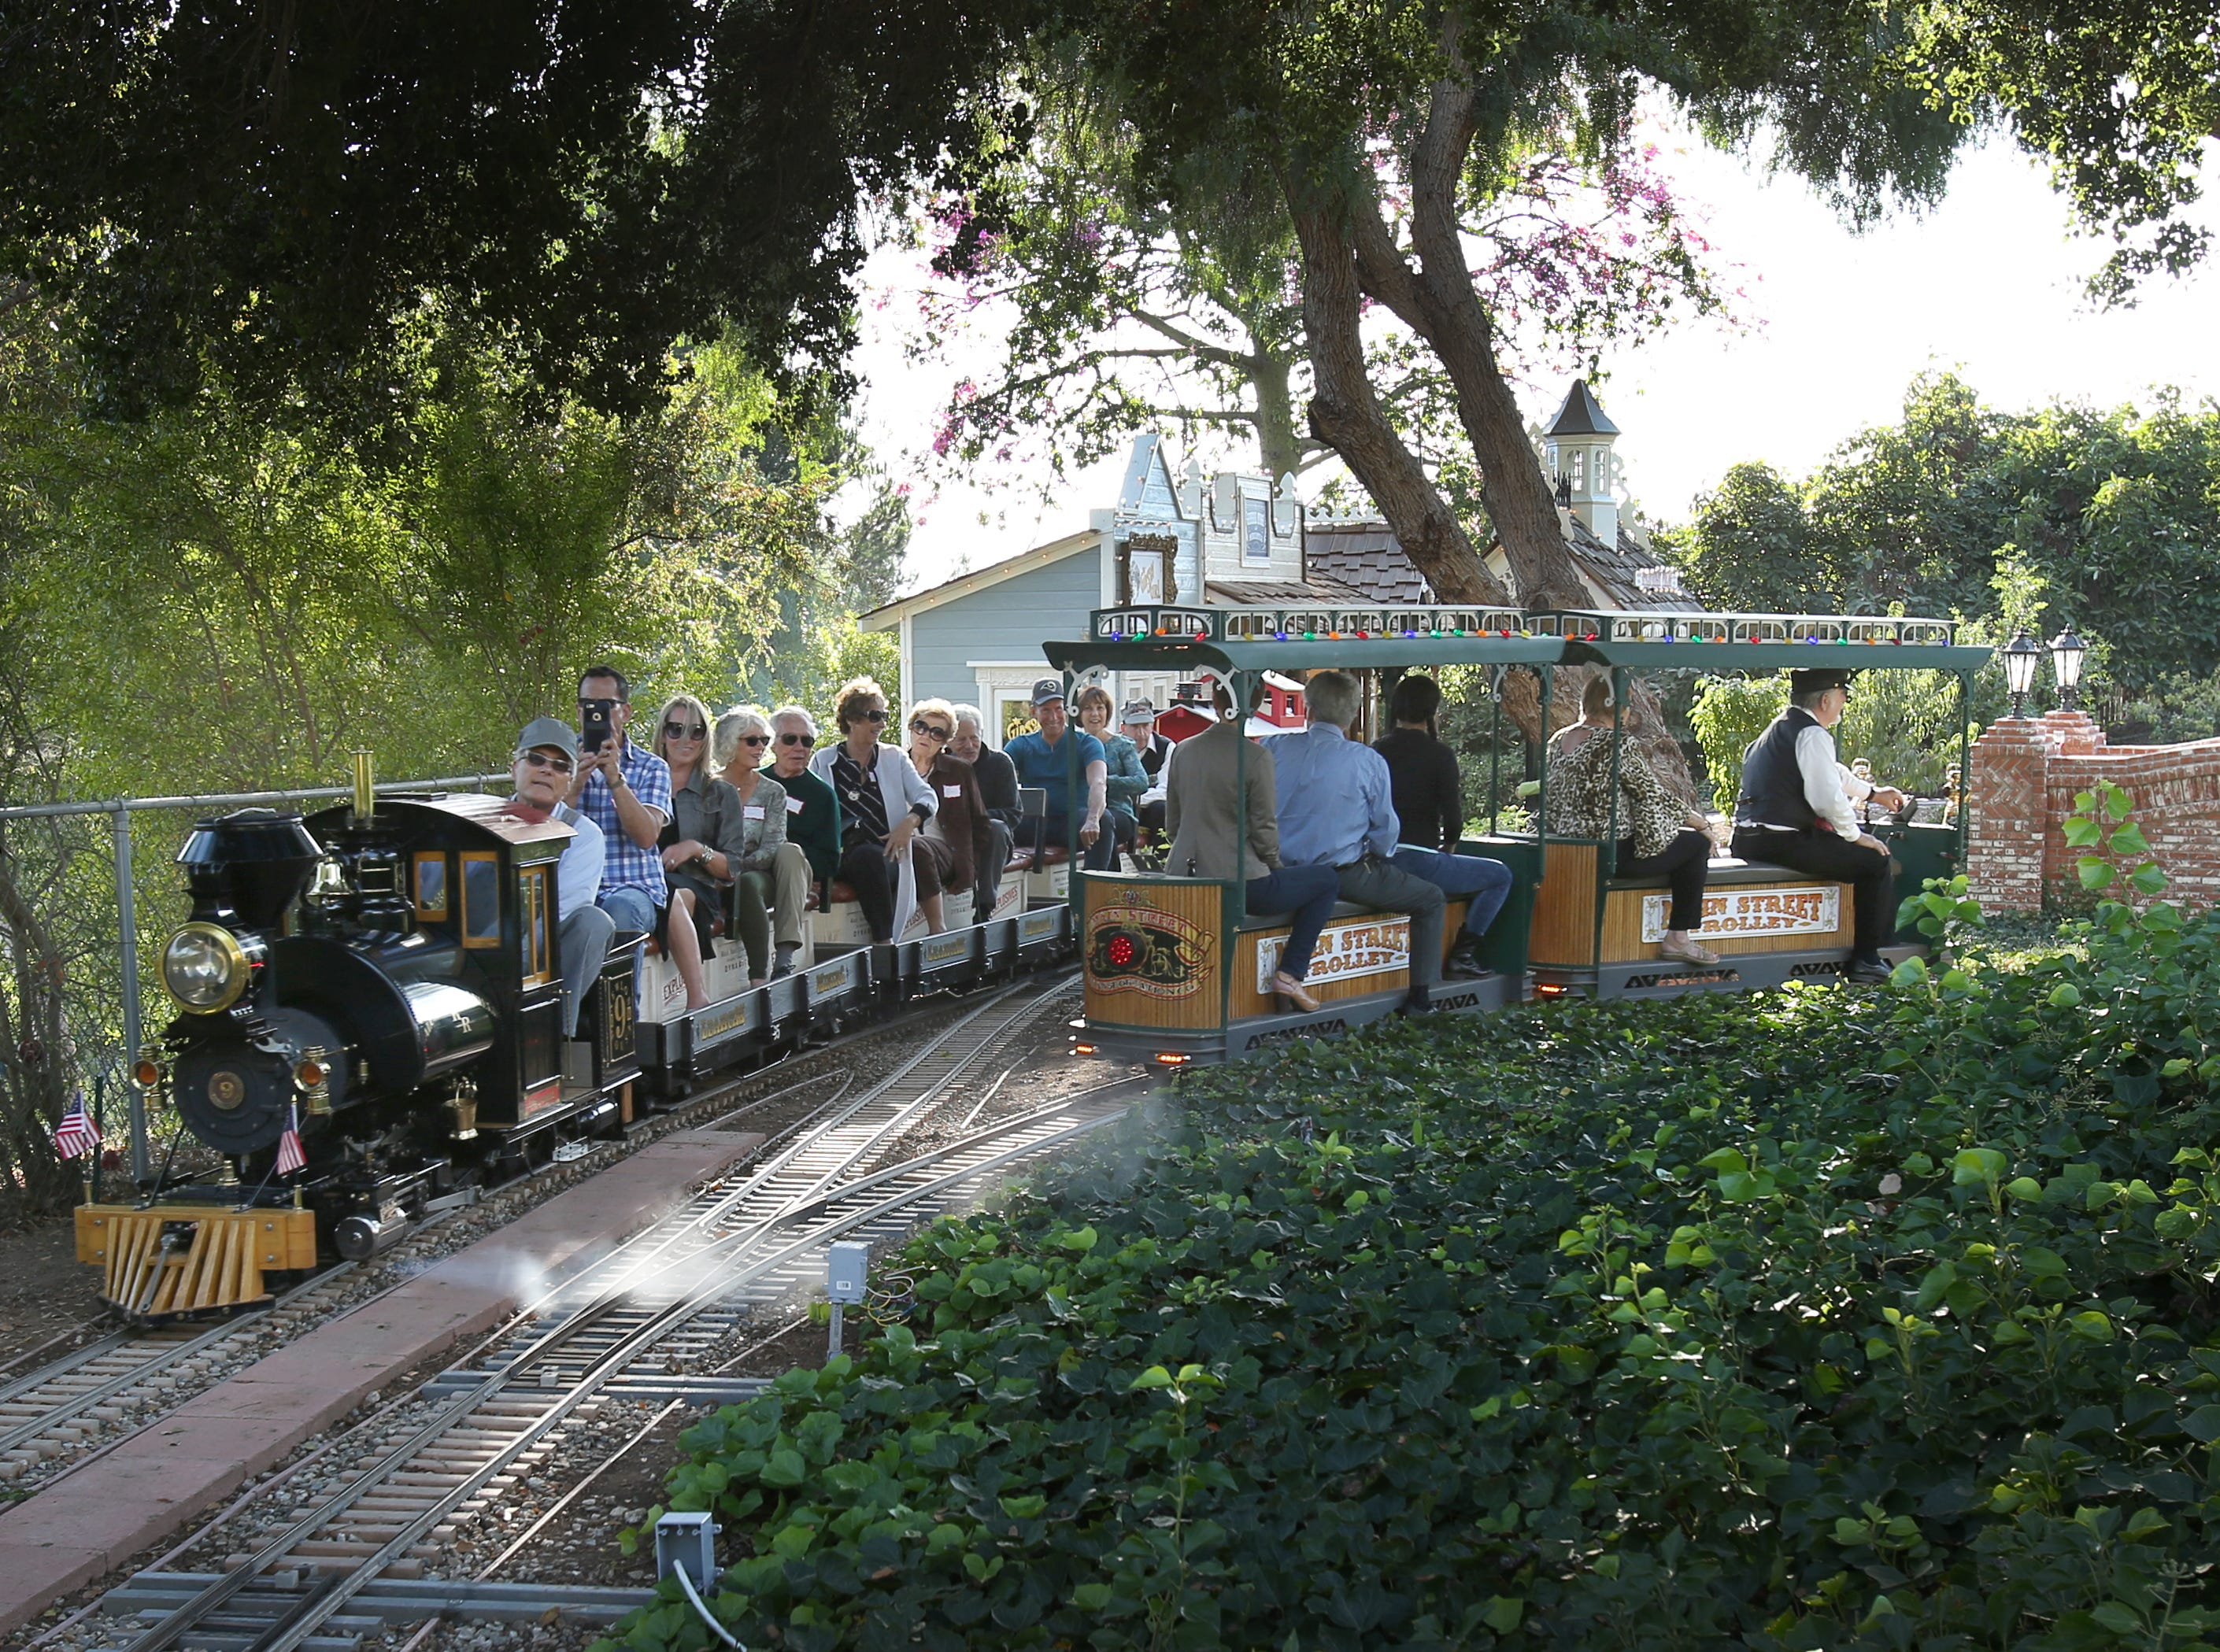 Guests from the California Museum of Art Thousand Oaks ride a steam train and a replica of a Disneyland Main Street Trolley during their tour of Mike and Lorraine Newlons' Victorian-style home in the Santa Rosa Valley. Piloting the train is Bryan Tapking, of Thousand Oaks, and piloting the trolley is owner Mike Newlon. The train and trolley also pass through a tunnel that Mike Newlon said was the first privately owned licensed tunnel in Ventura County.